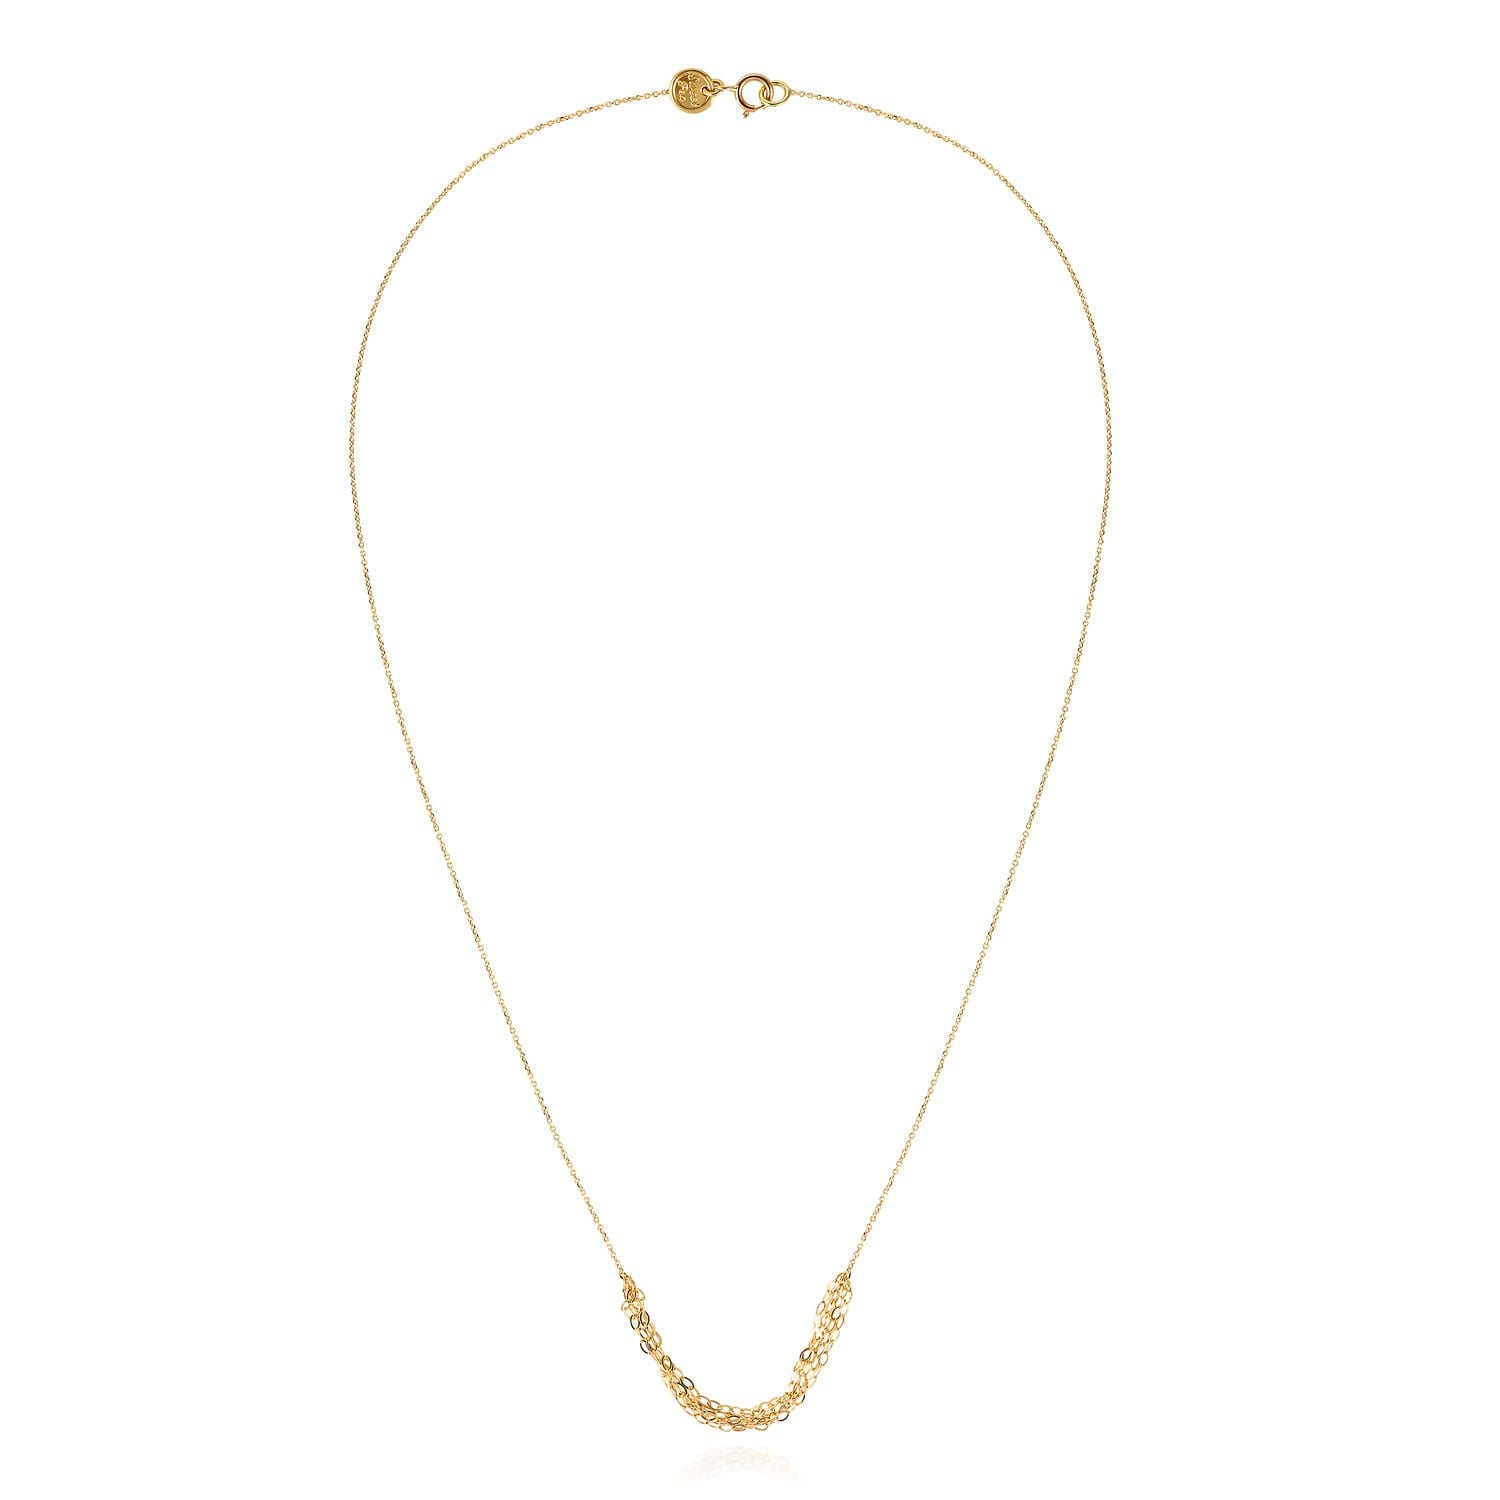 Vincents Fine Jewelry | Sweet Pea | Layered Tassel Chain Necklace